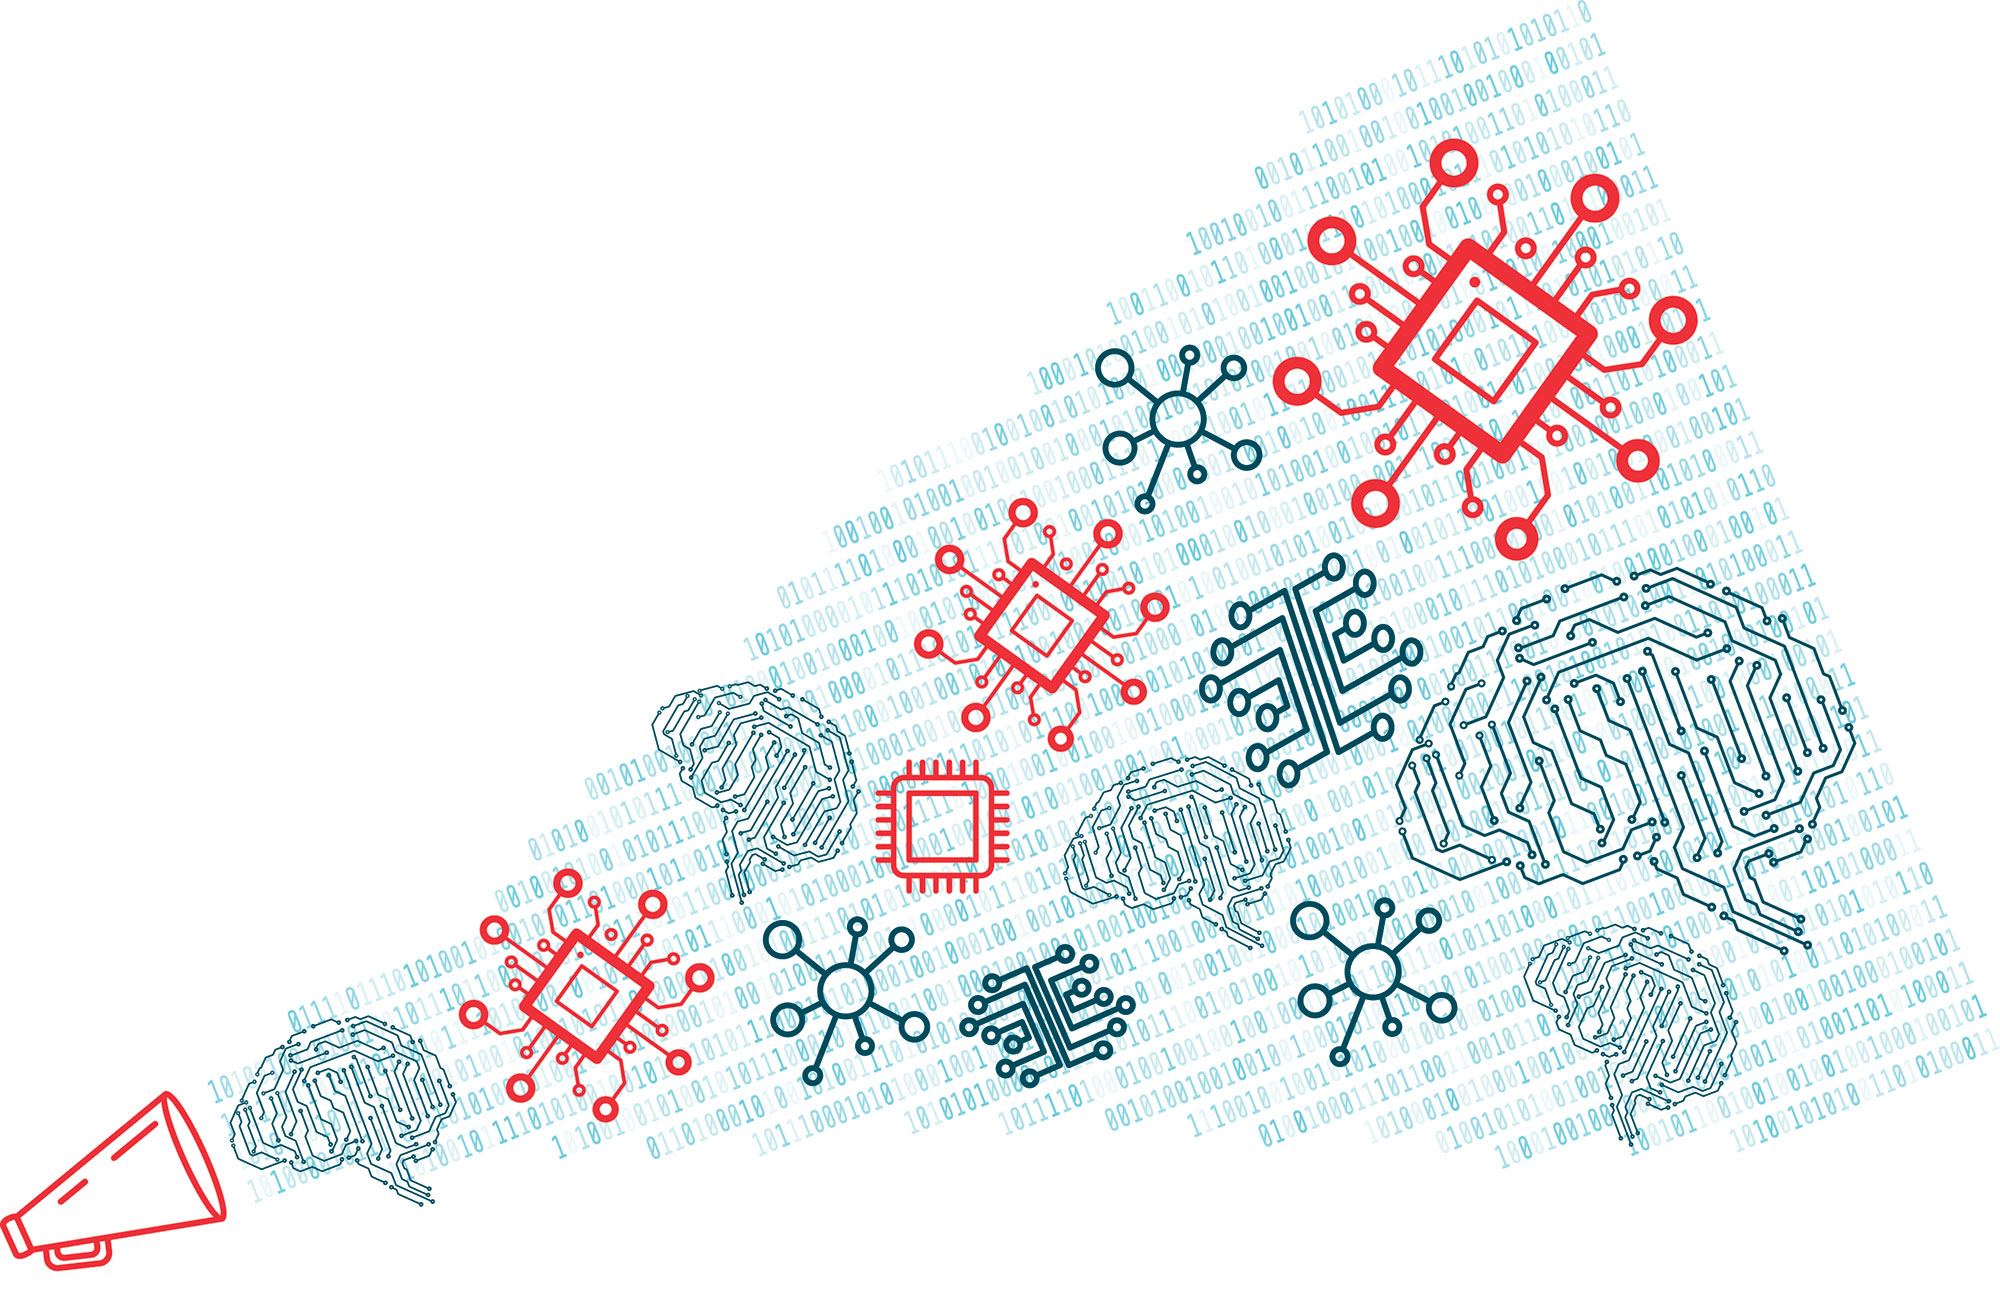 Is machine learning overhyped?